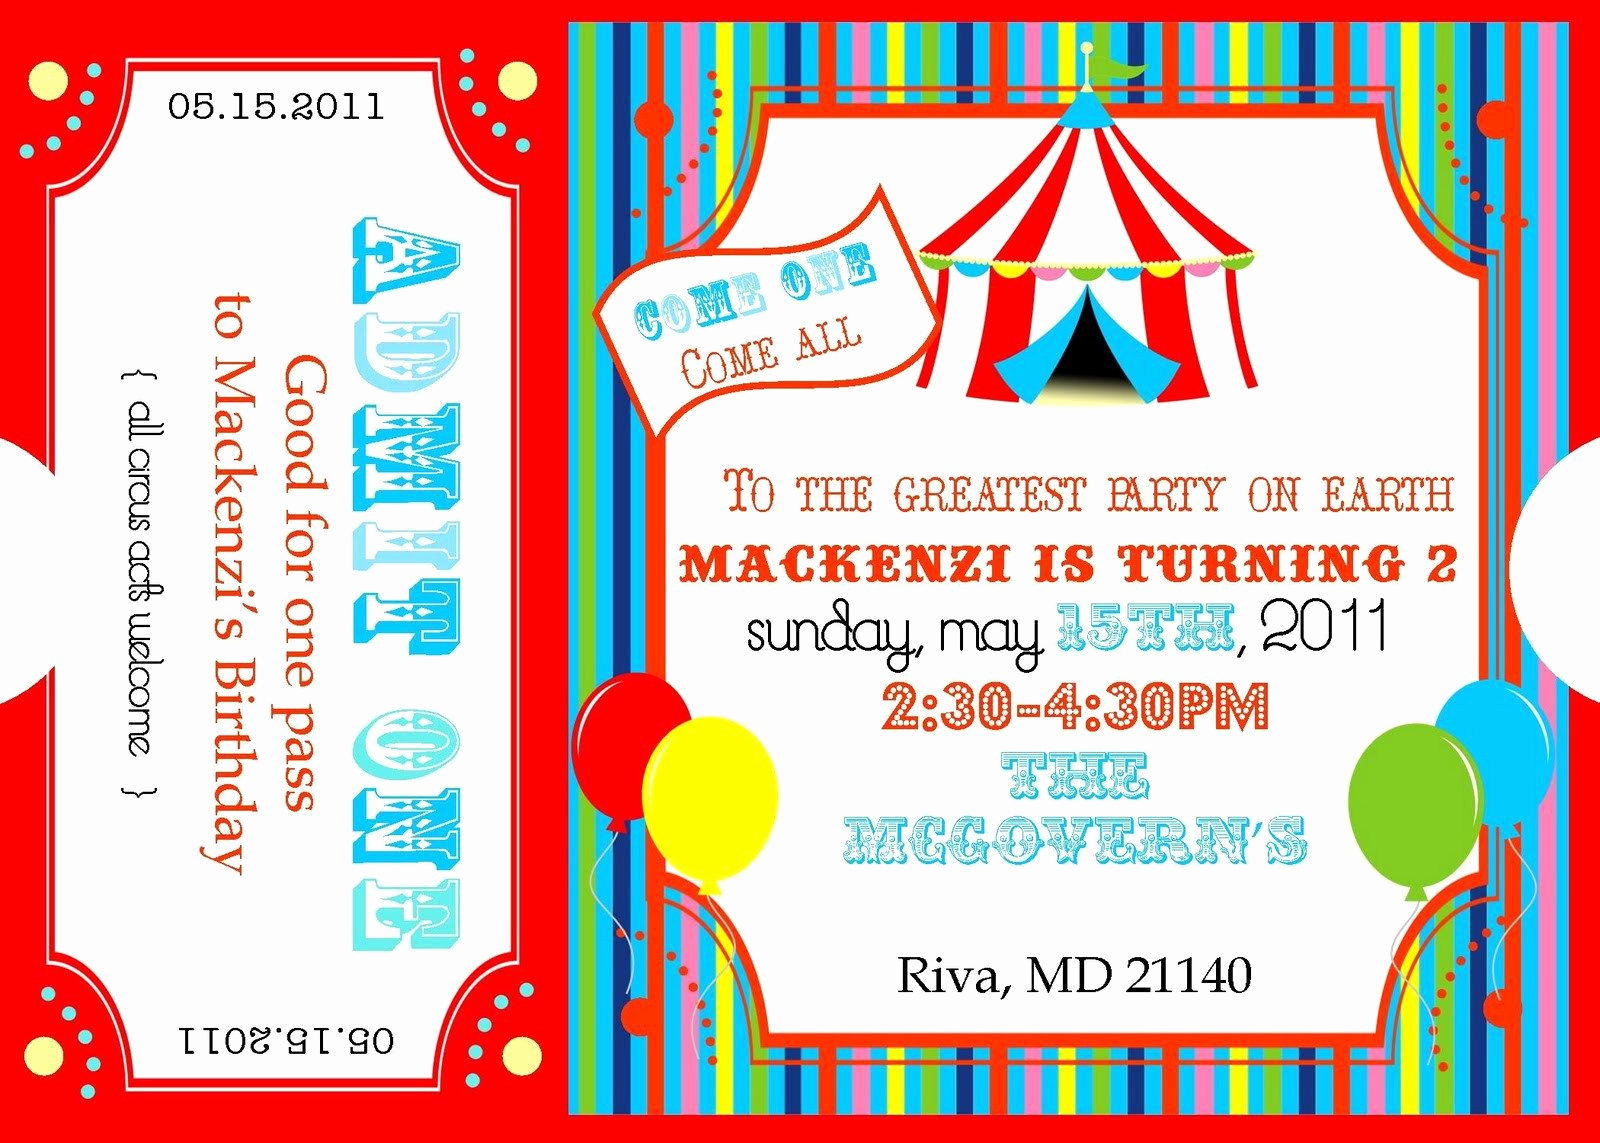 Carnival Ticket Invitation Template Free Inspirational Free Printable Circus Invitation Templates Please forgive